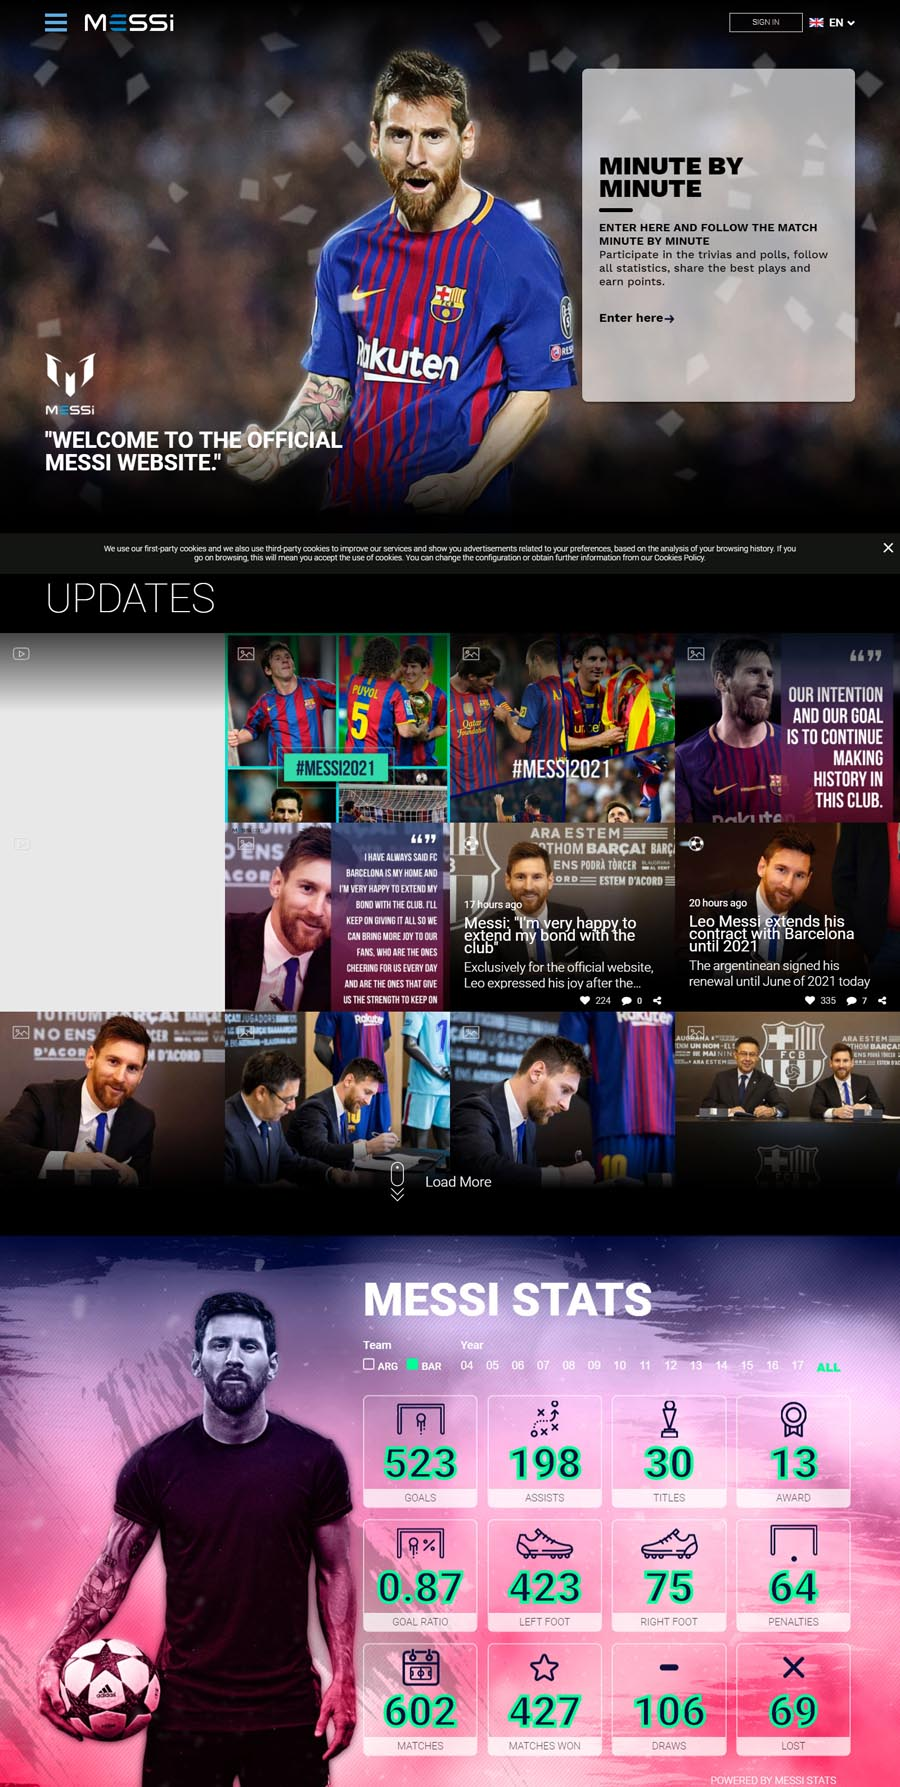 Lionel Messi Footballer Celebrity Website Design